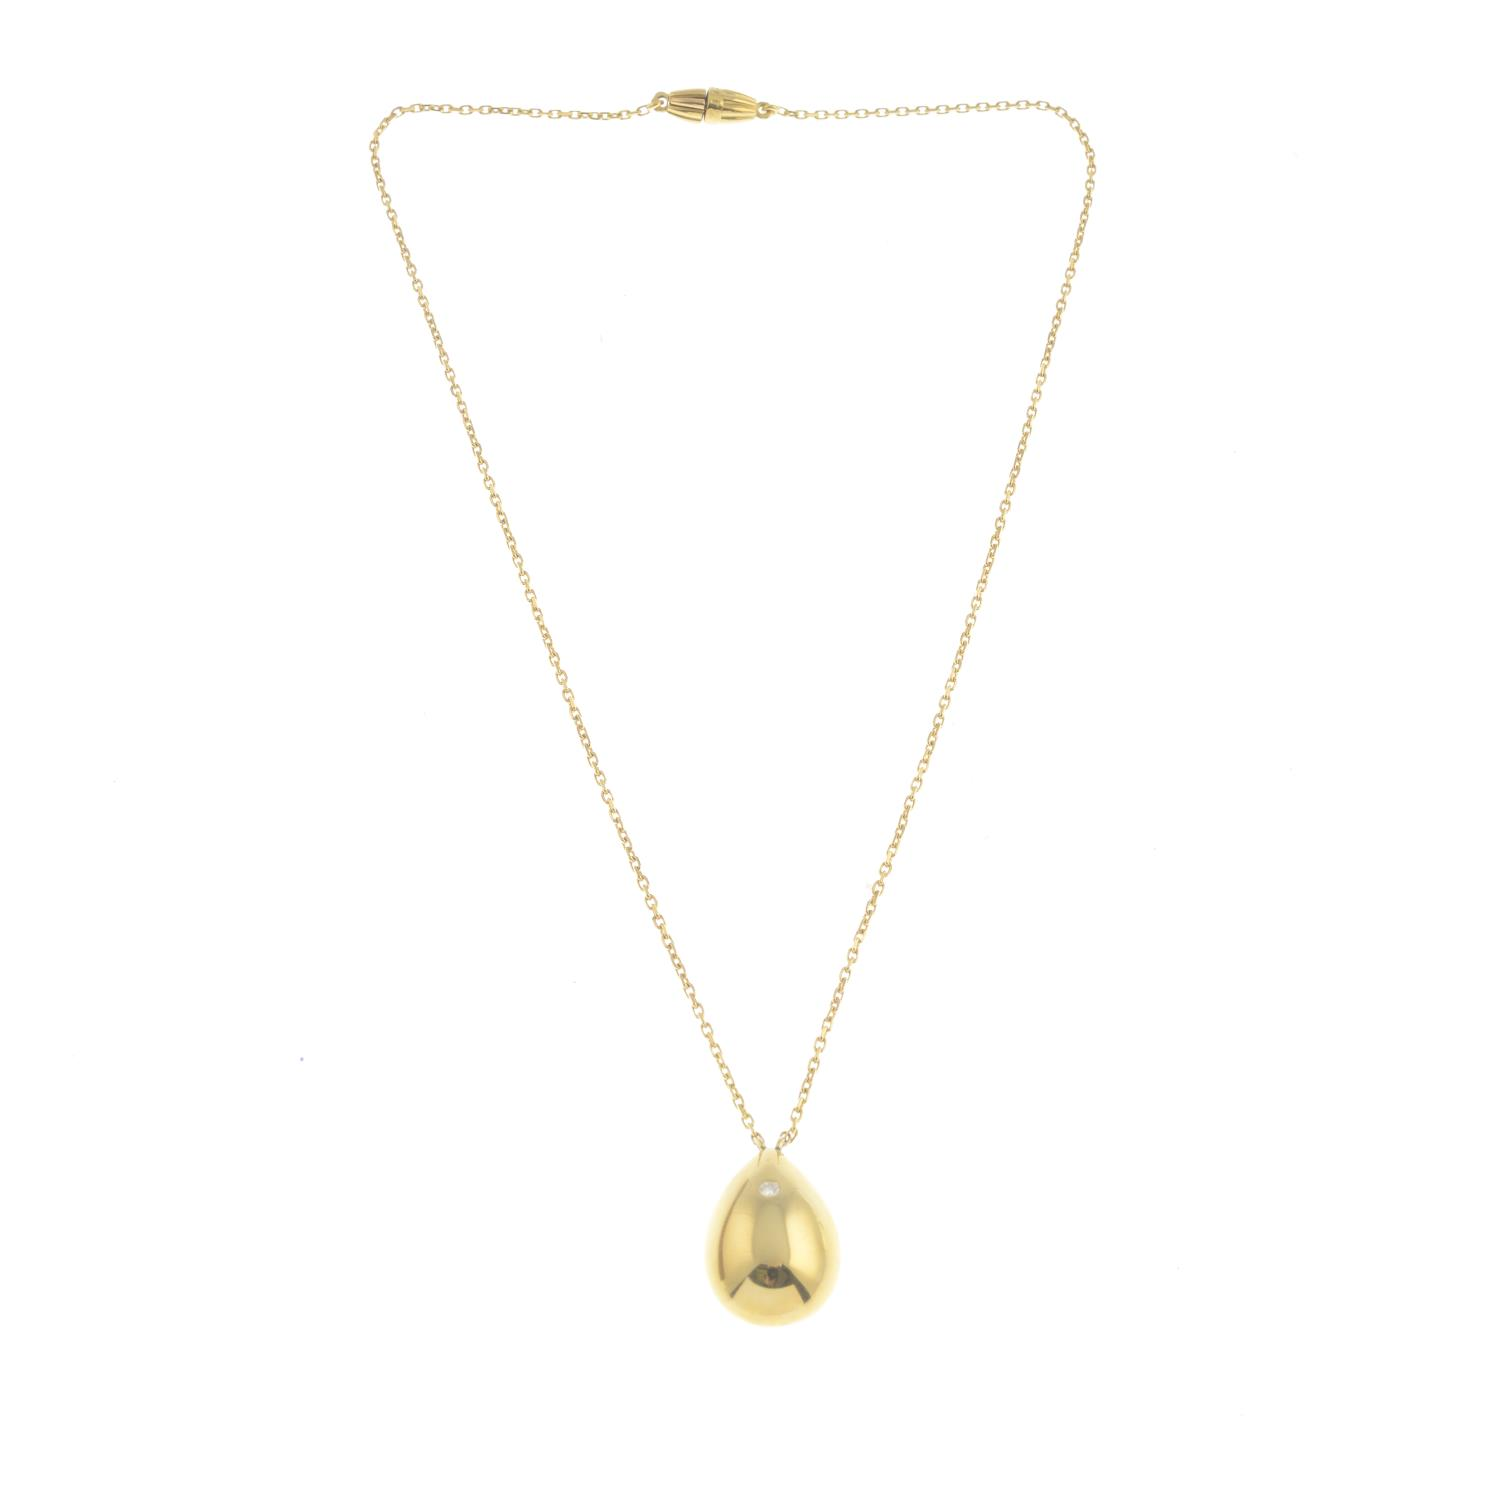 Lot 49 - A diamond pendant, suspended from a trace-link chain.Signed Ritz.